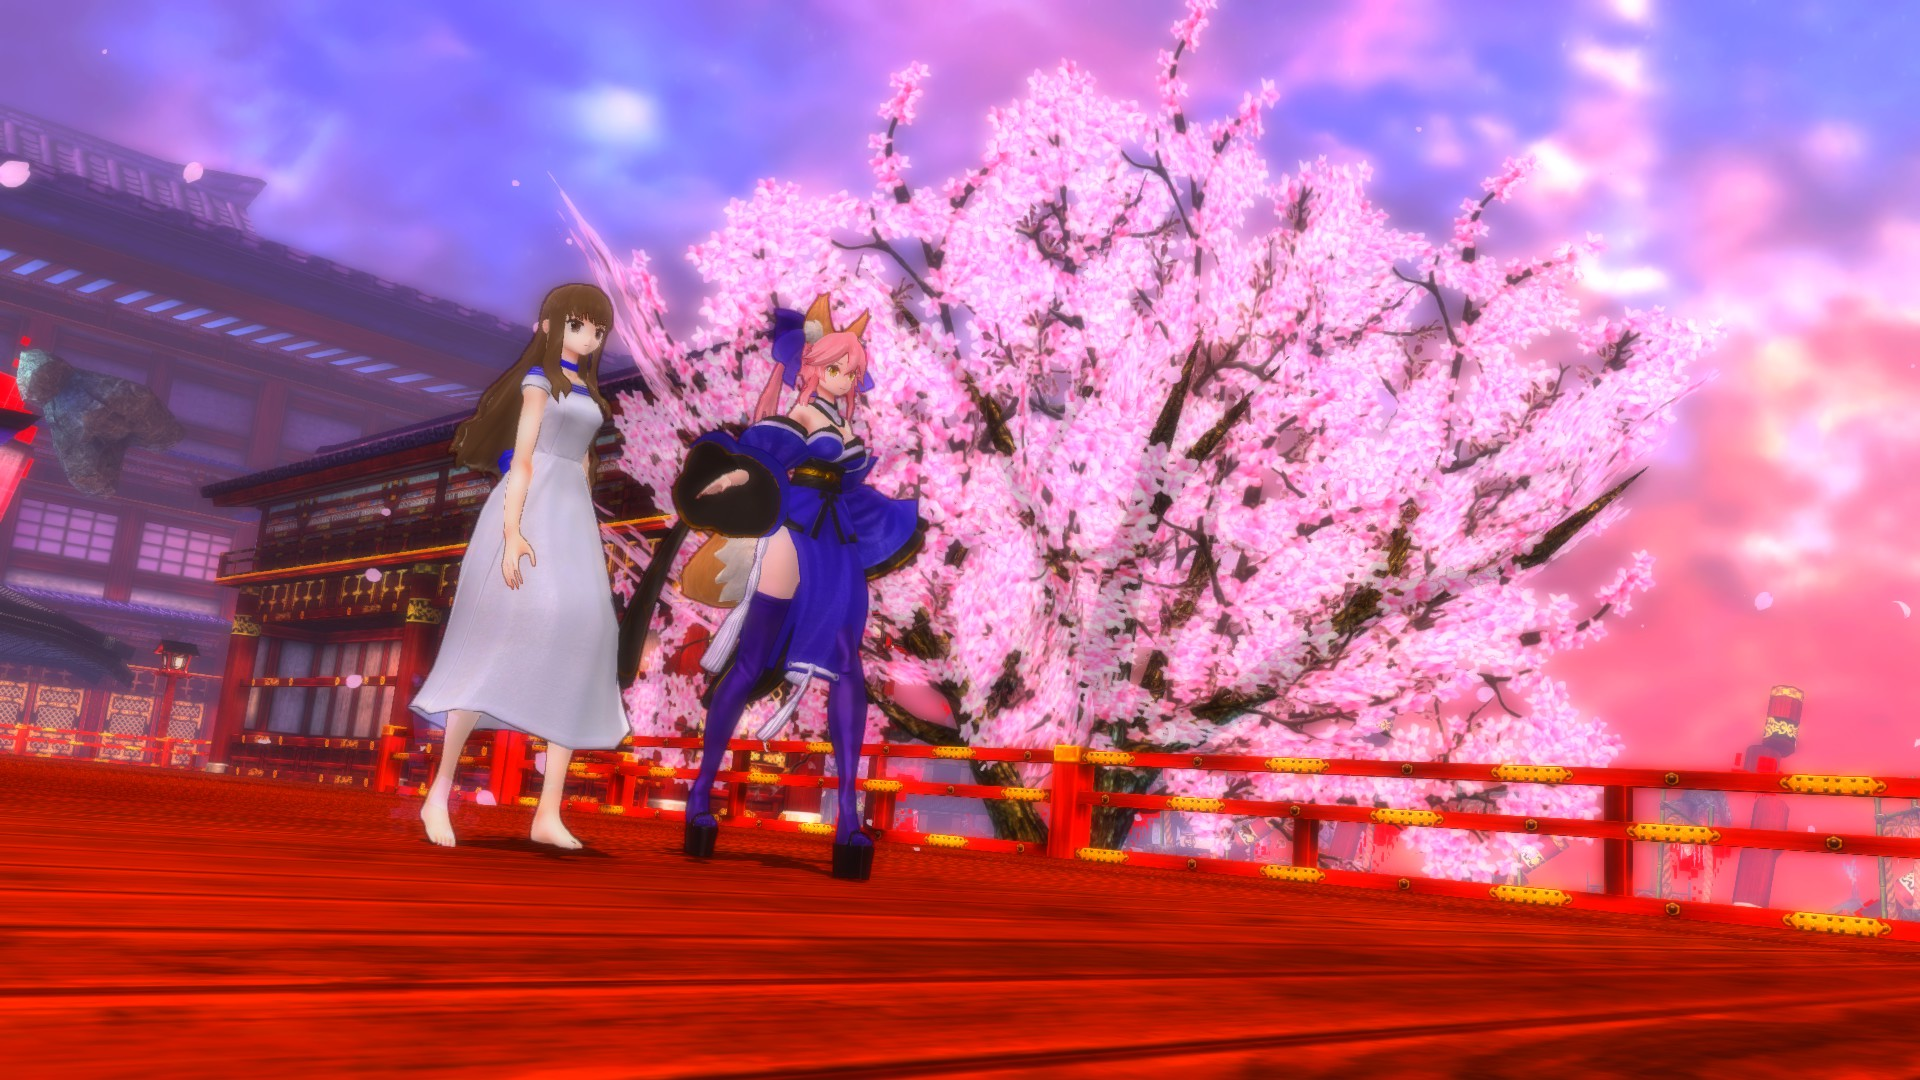 Fate_EXTELLA_ The Umbral Star (PC) - 05